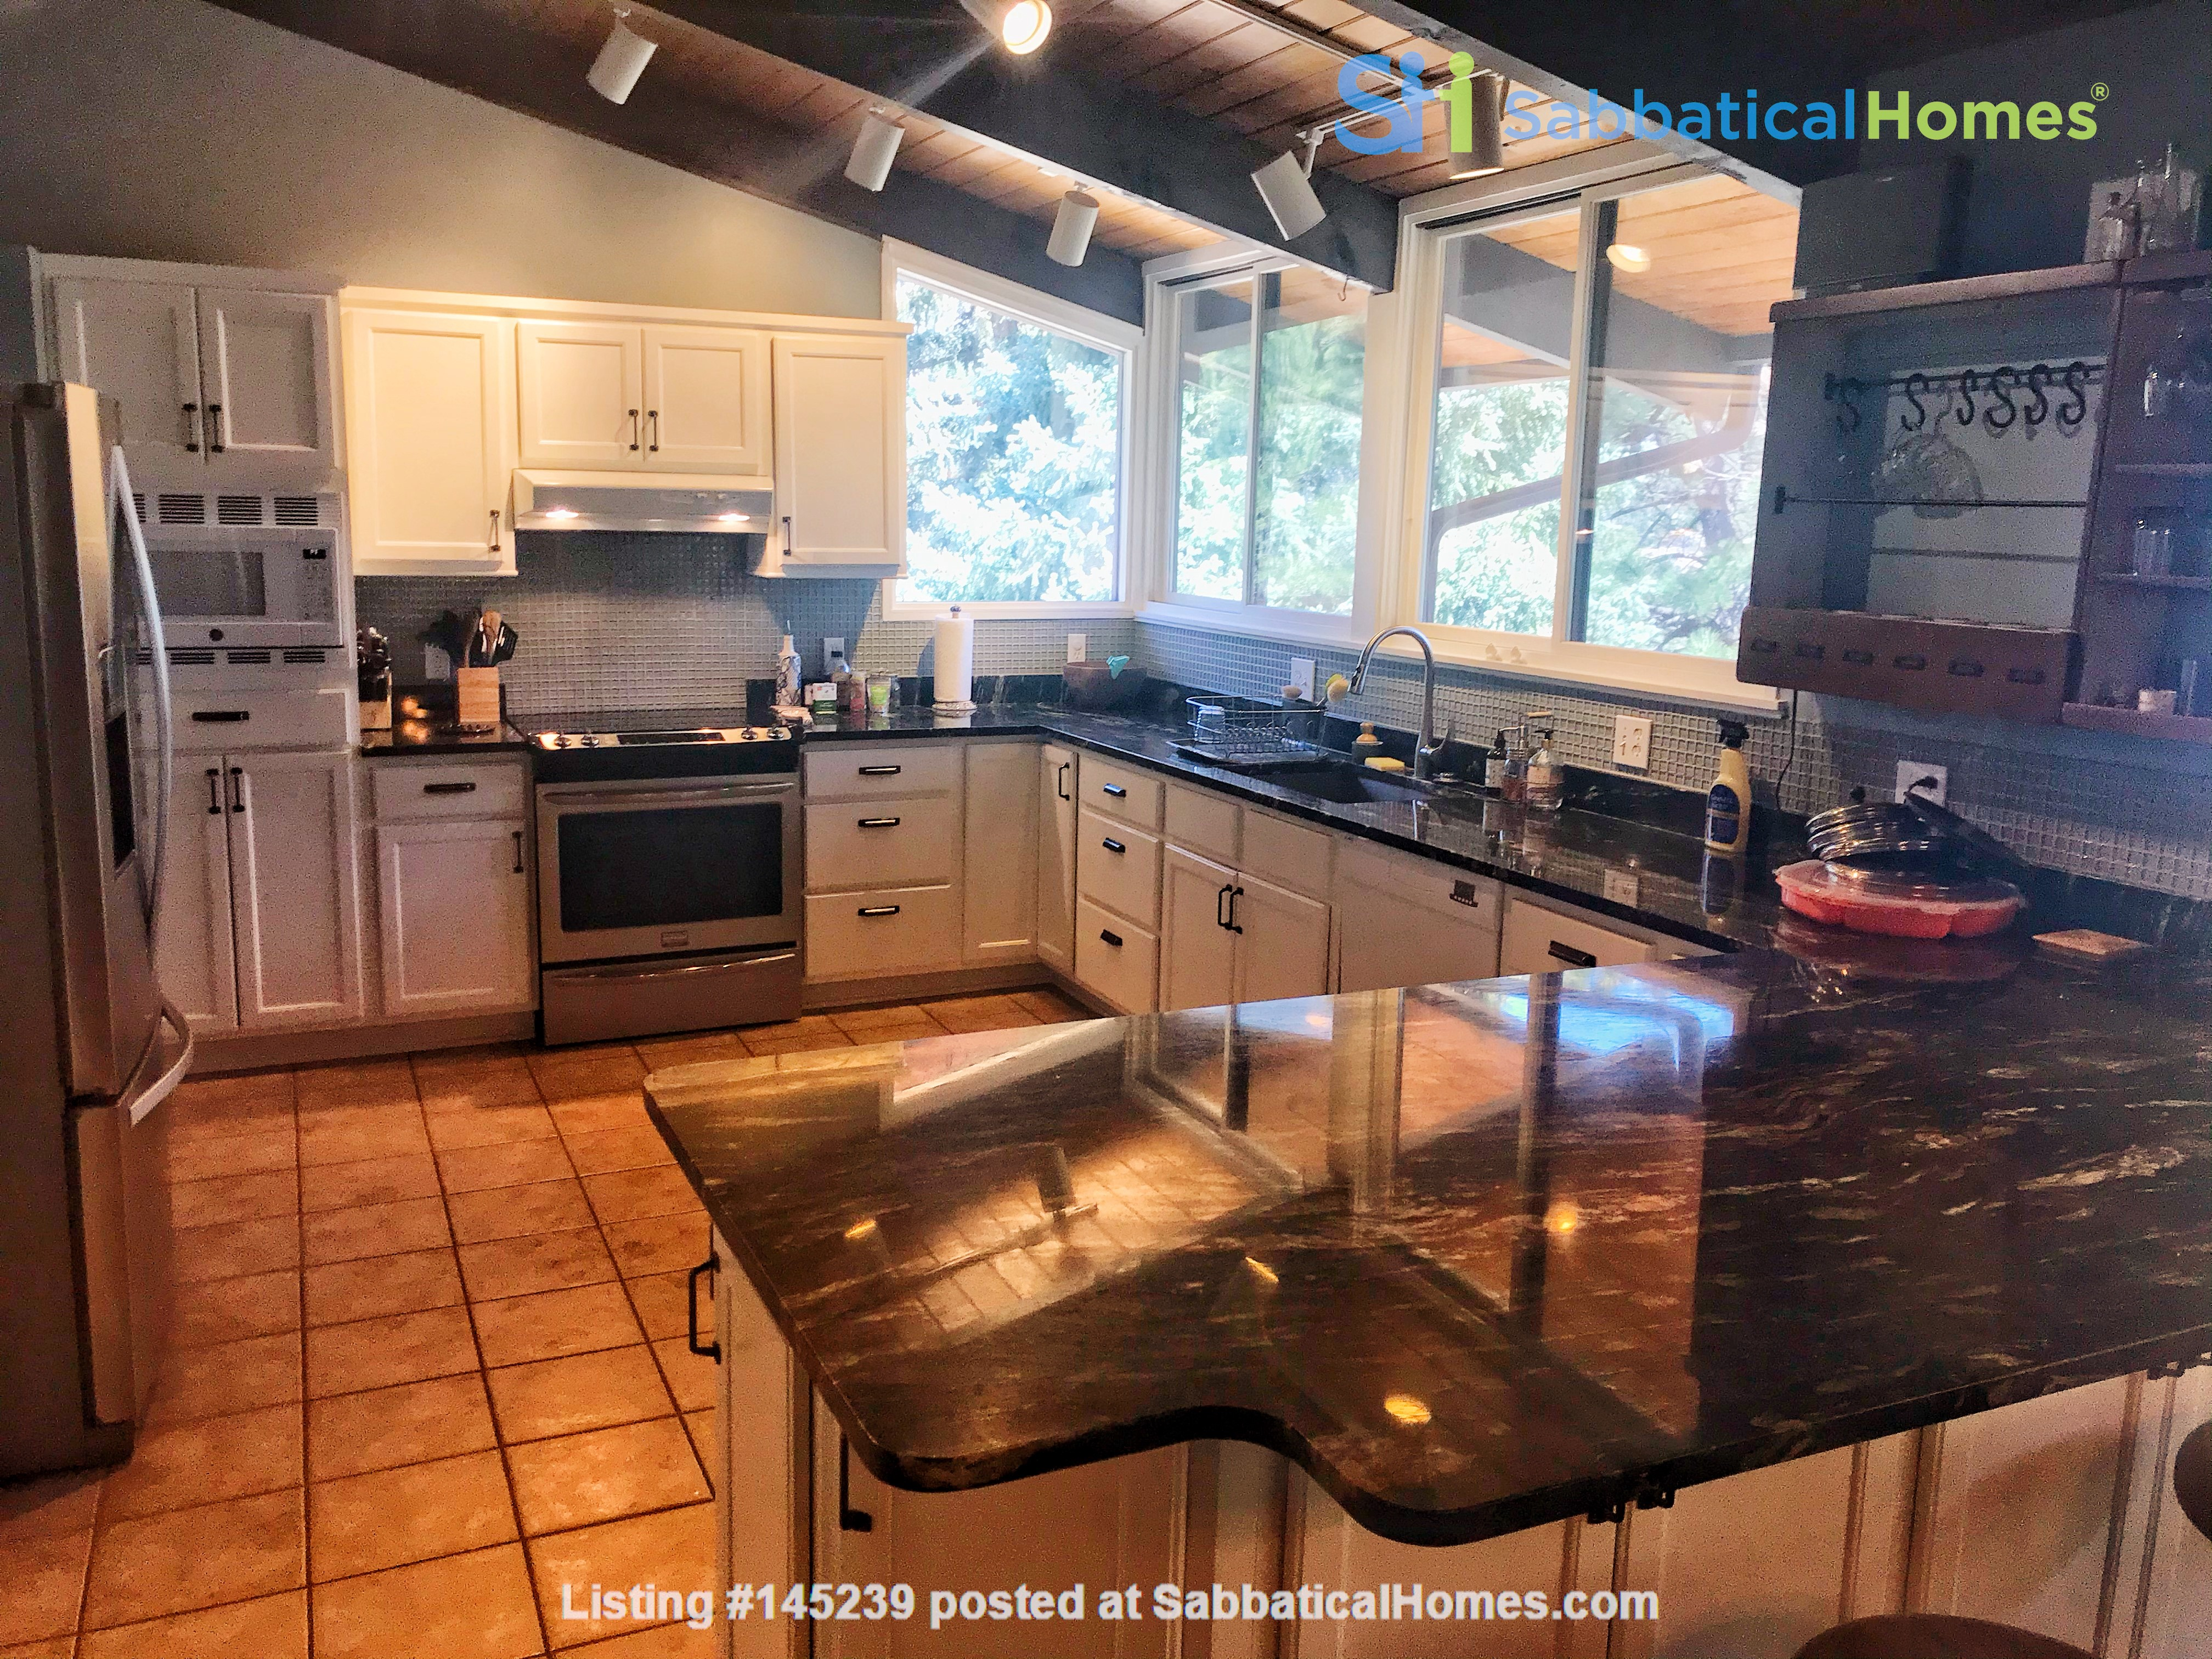 Lovely Mountain Home for Rent Home Rental in Boulder, Colorado, United States 1